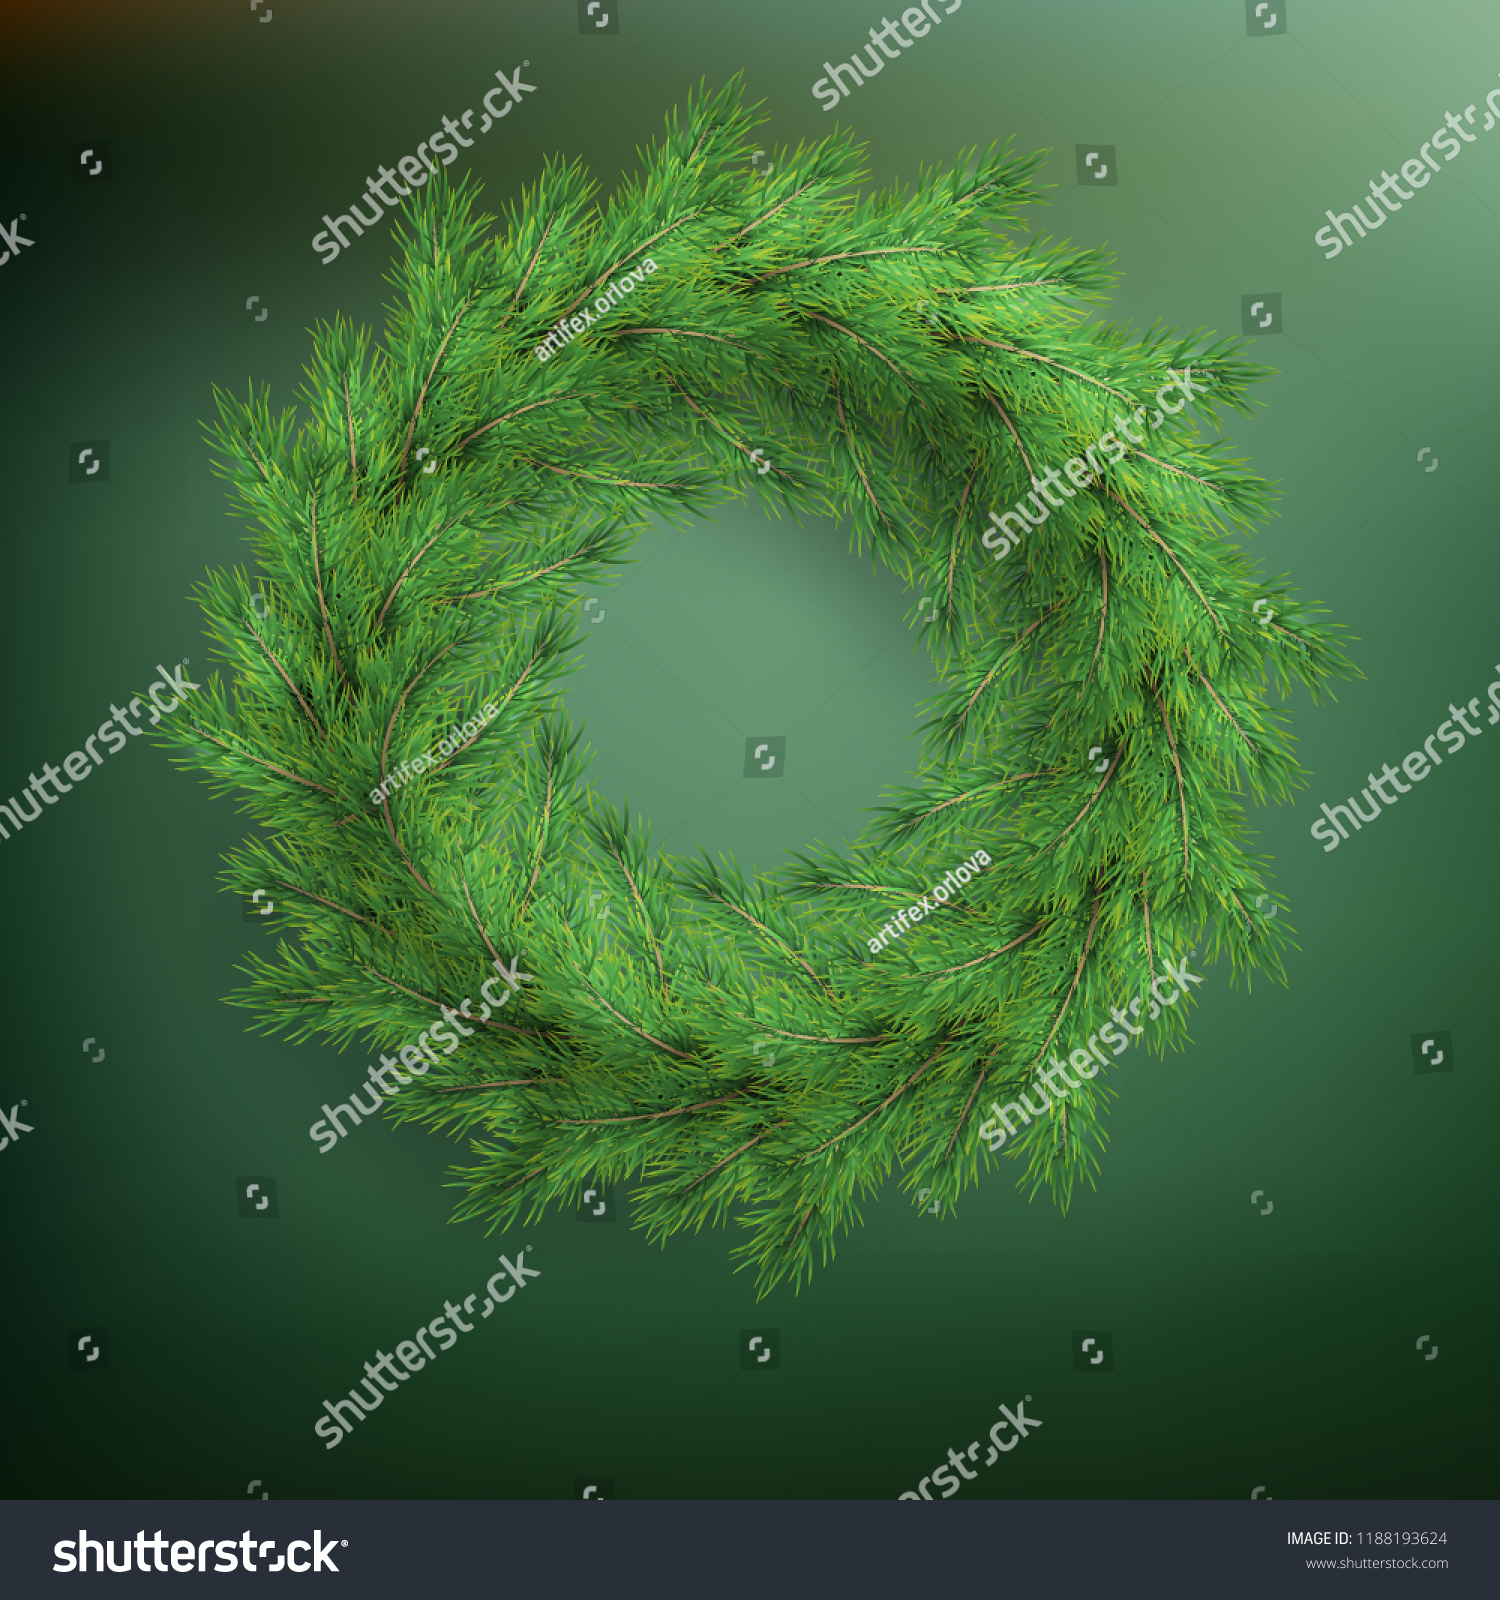 new year and christmas wreath greeting template frame traditional winter decoration with evergreen green branches